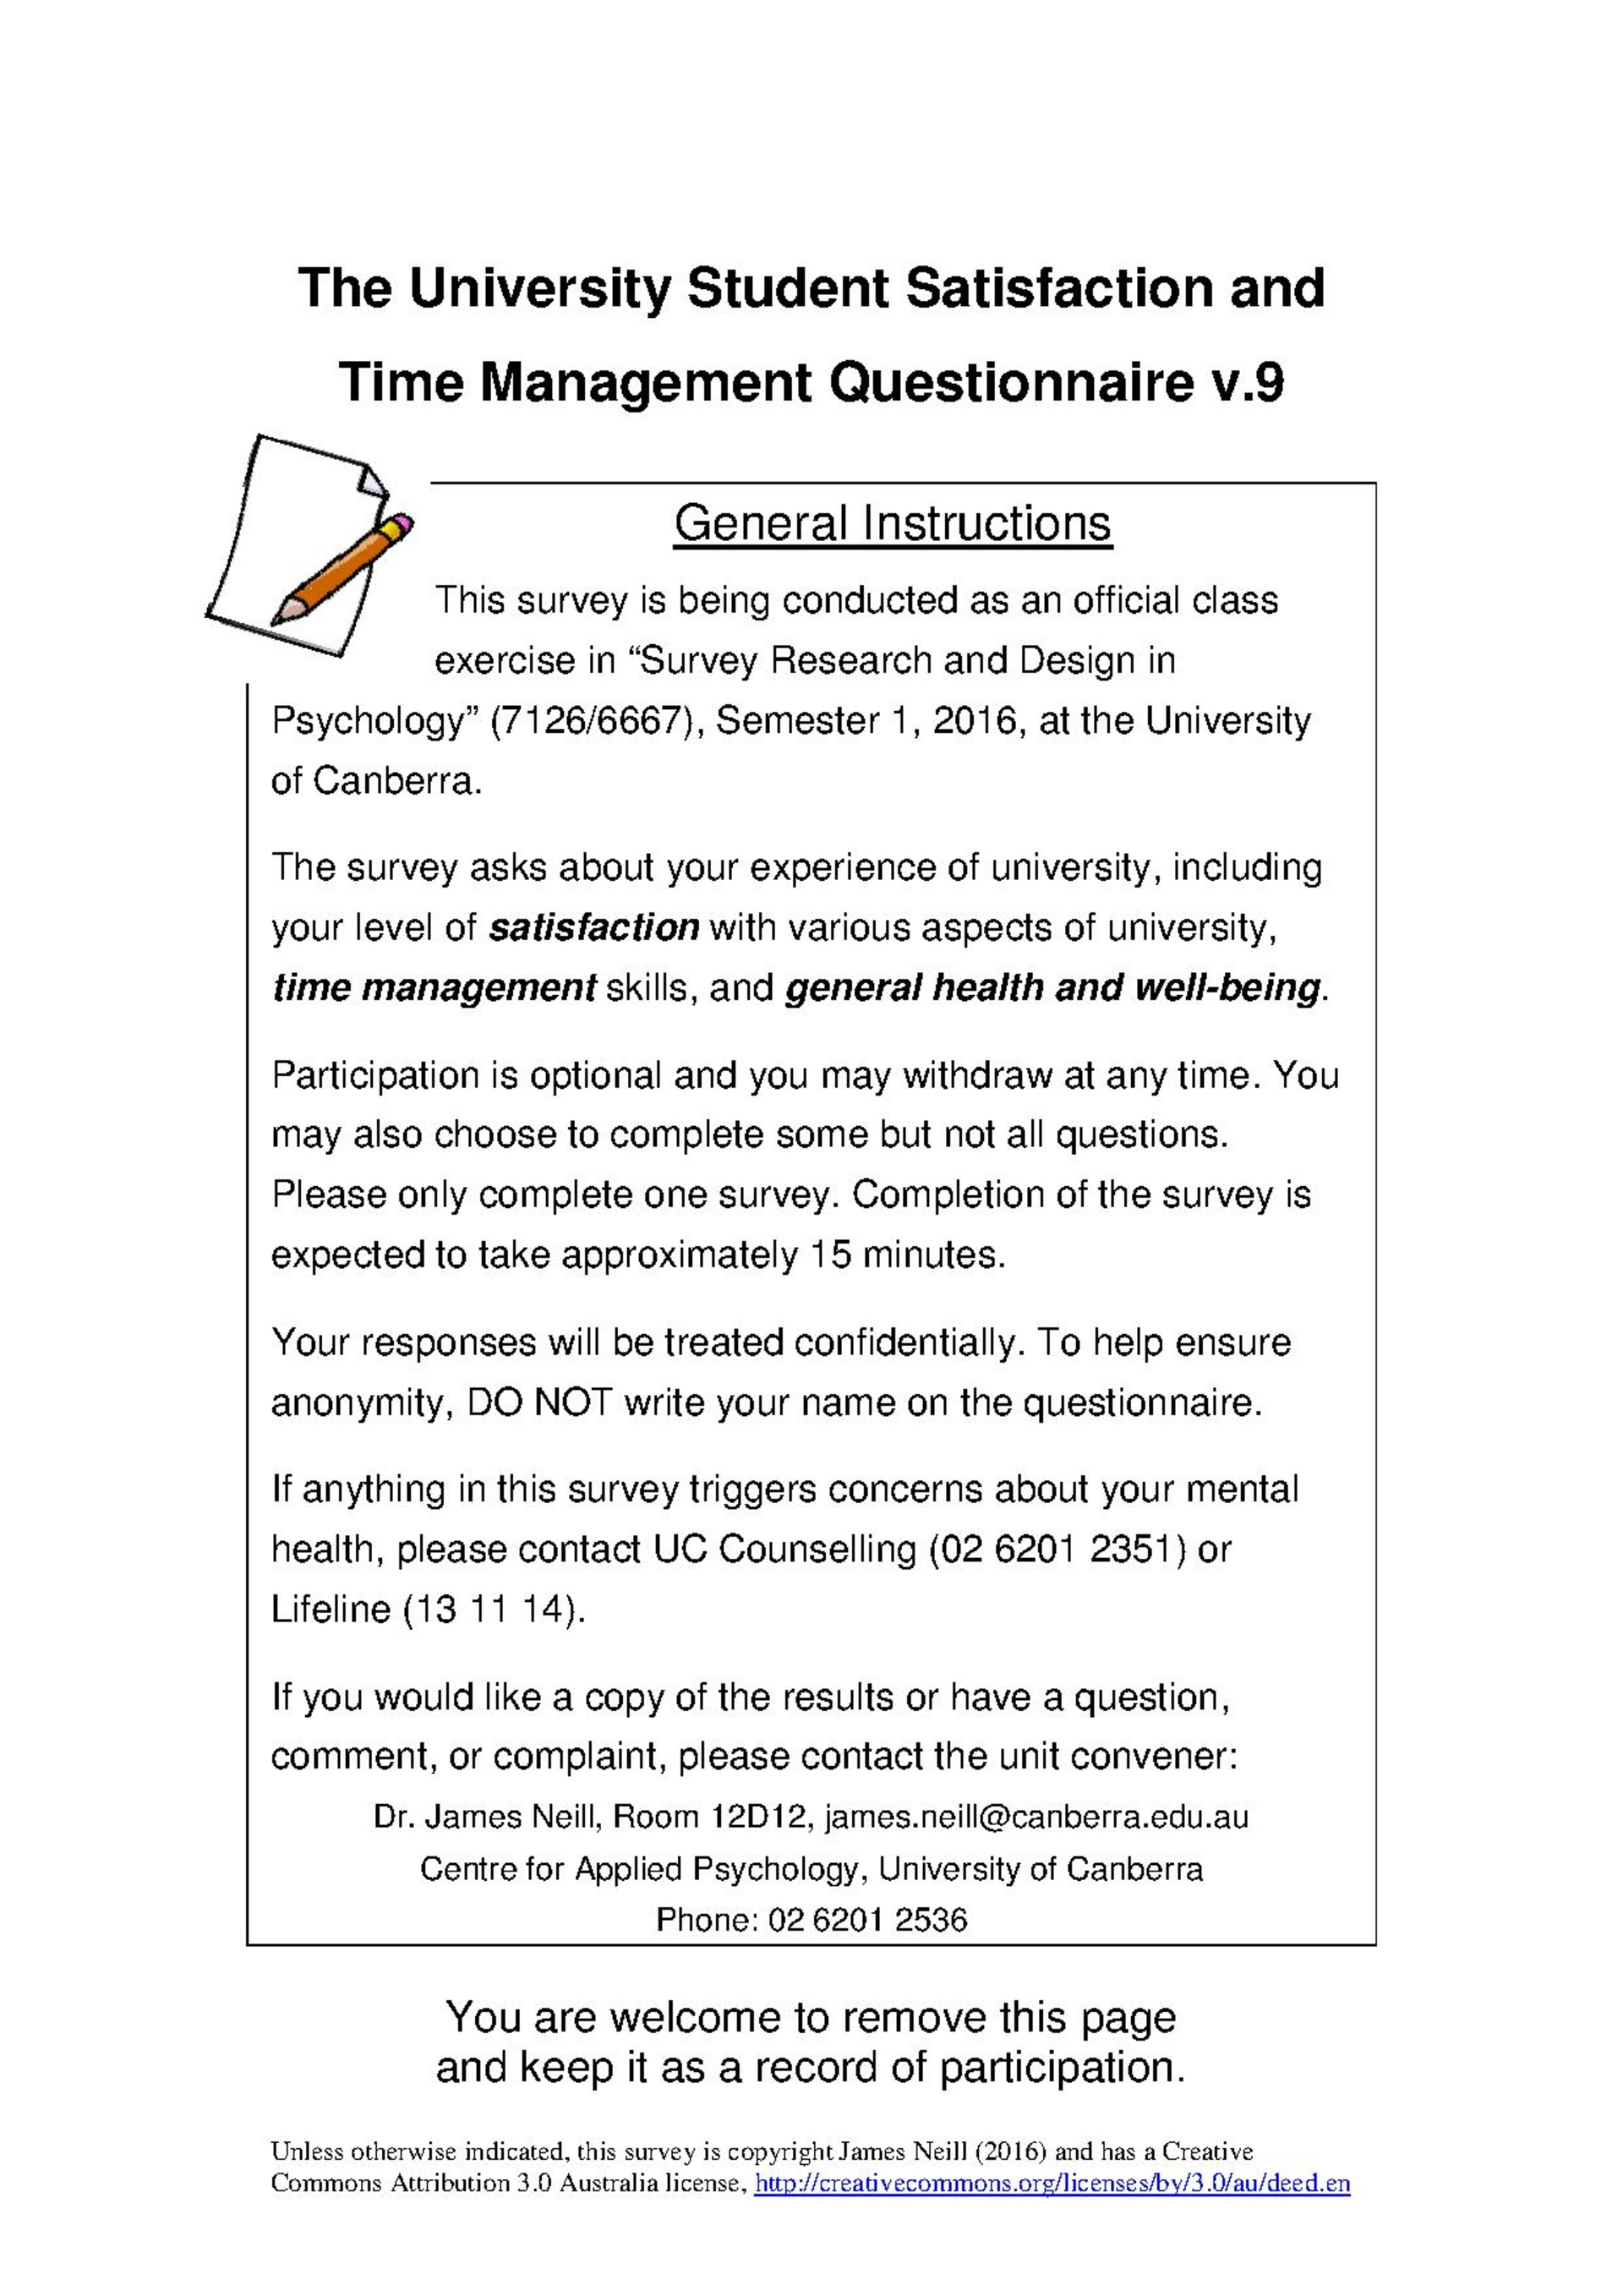 survey research and design in psychologyassessmentsurvey